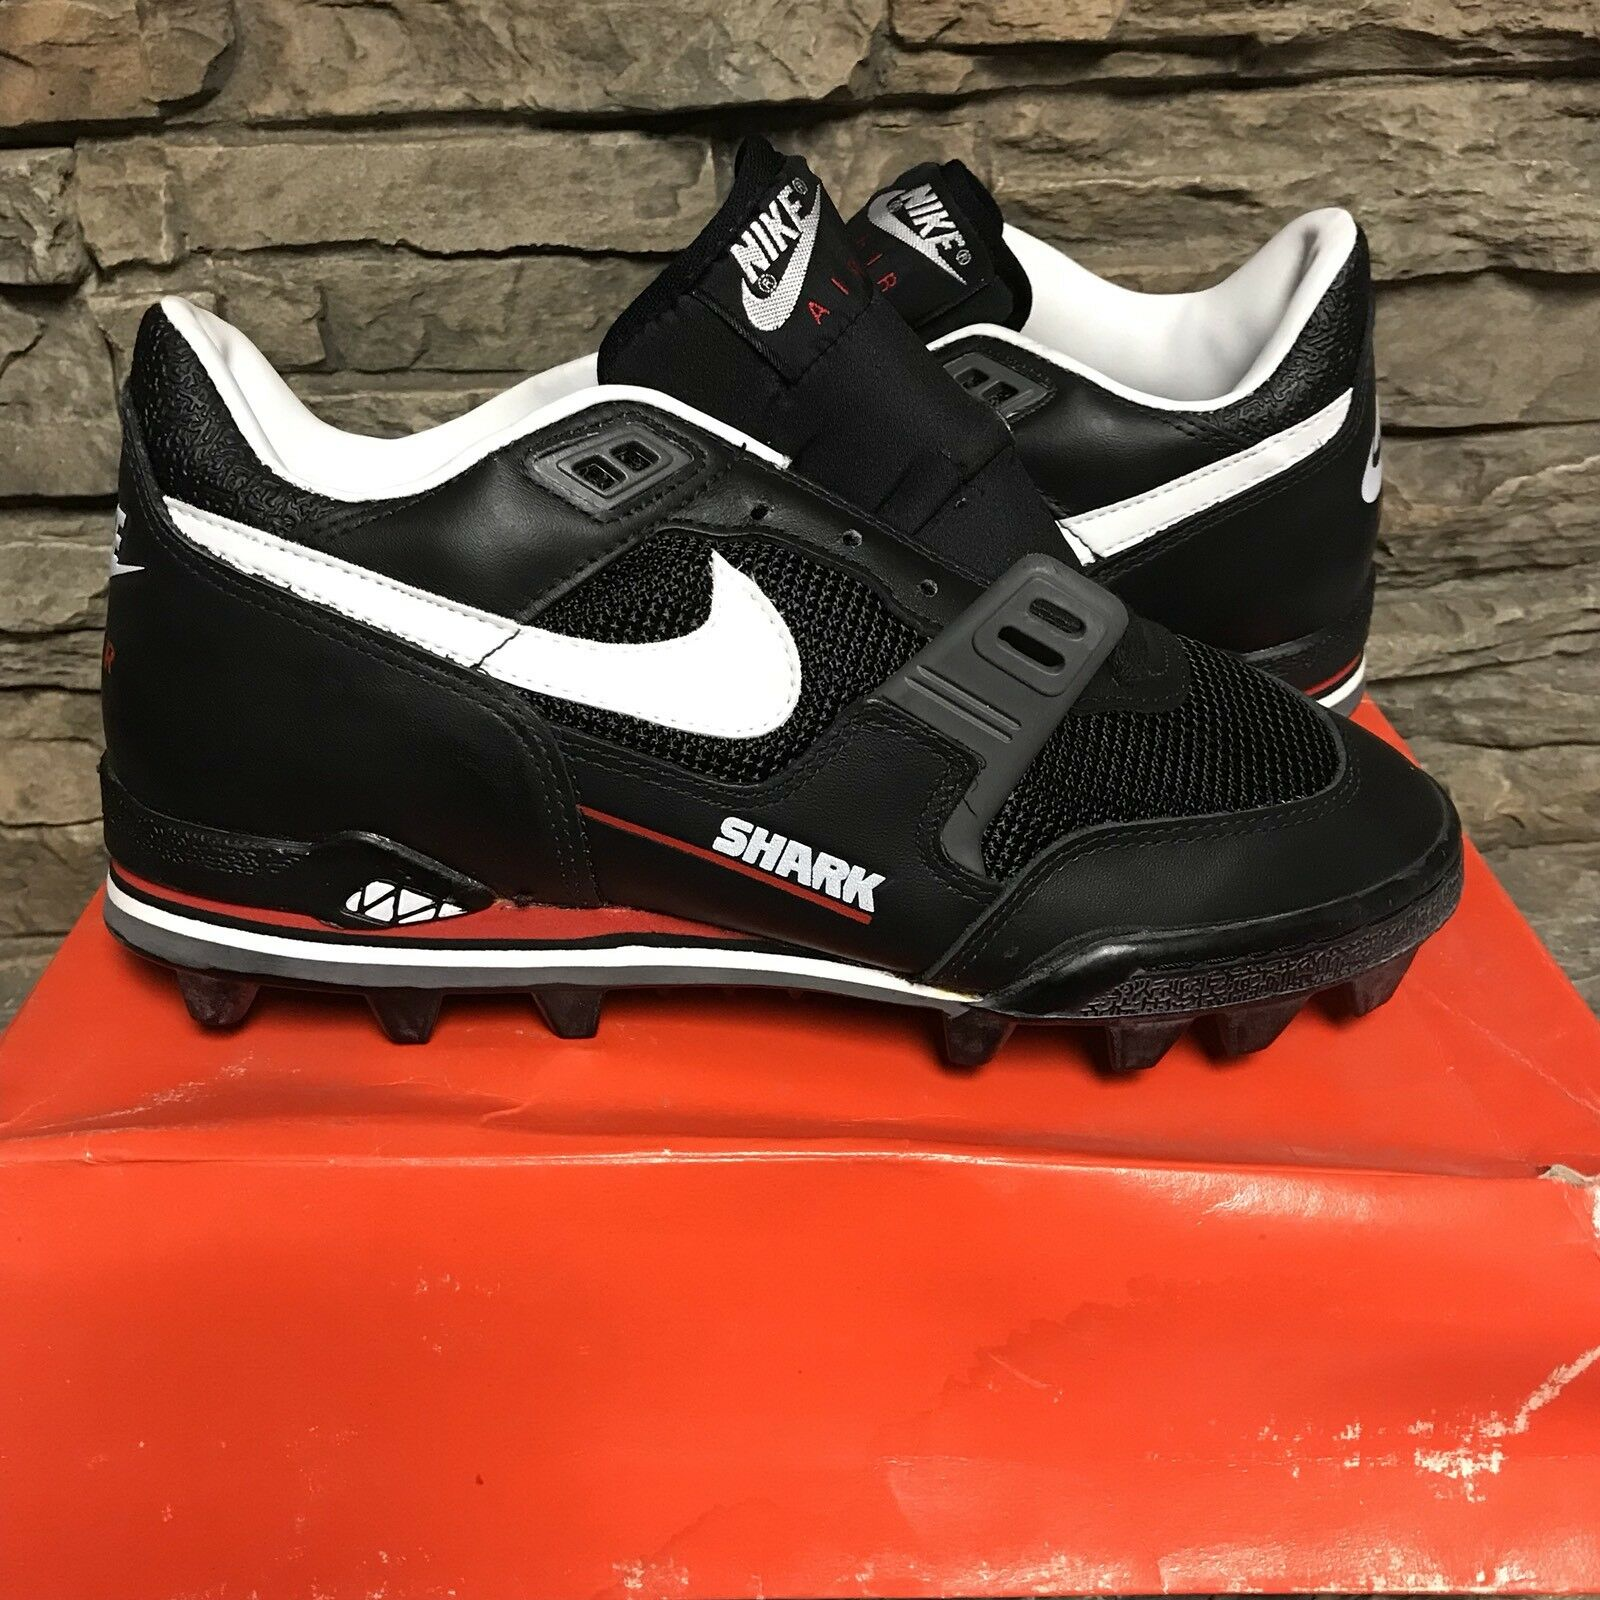 VTG Nike Air Boss Spikes Shark Mid Cleats 1990 Spikes Boss Athletic Chaussures 427b15